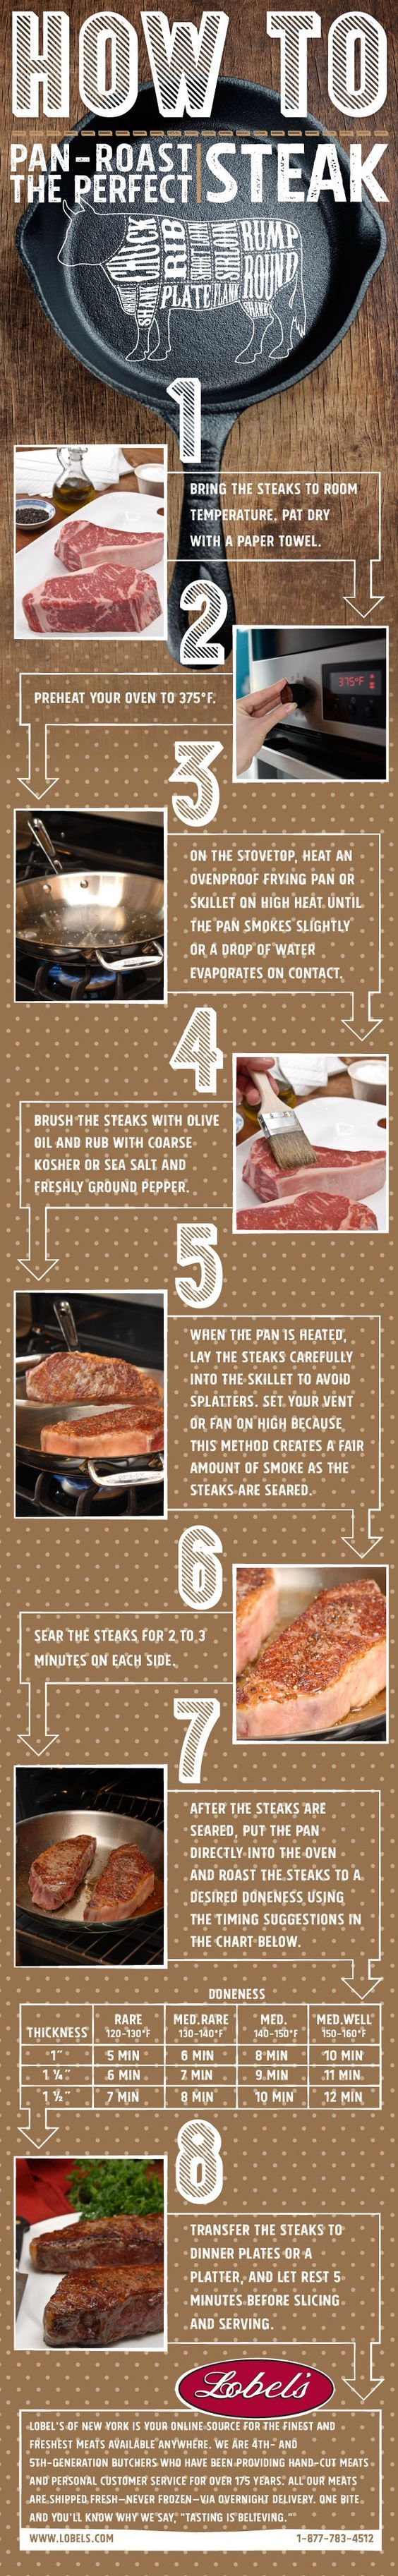 How to pan-roast the perfect steak